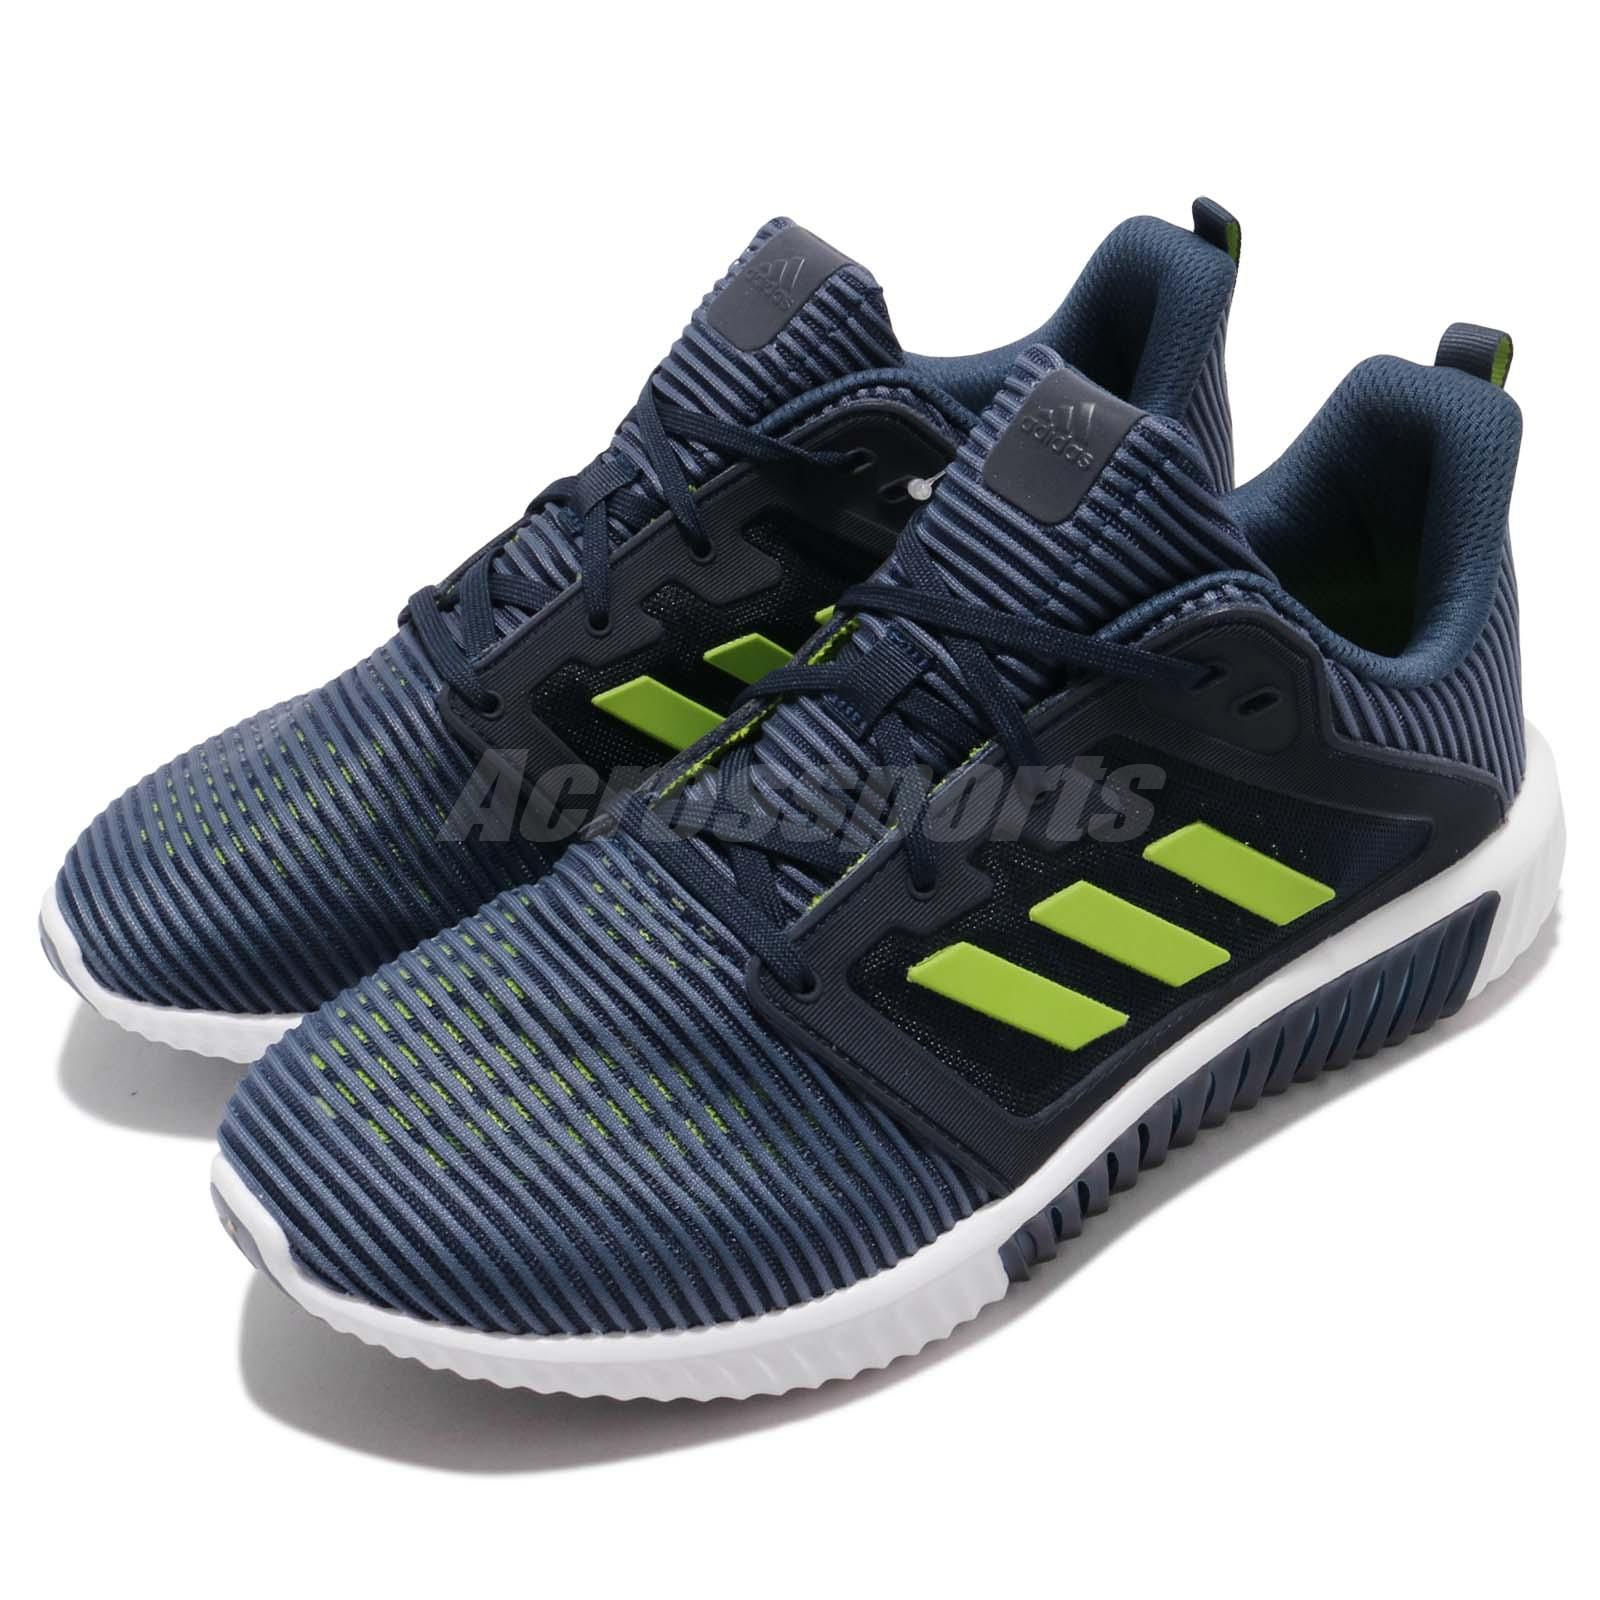 check out e6f83 87754 Details about adidas Climacool Vent M Core Navy Lime Men Running Shoes  Sneakers CM7397